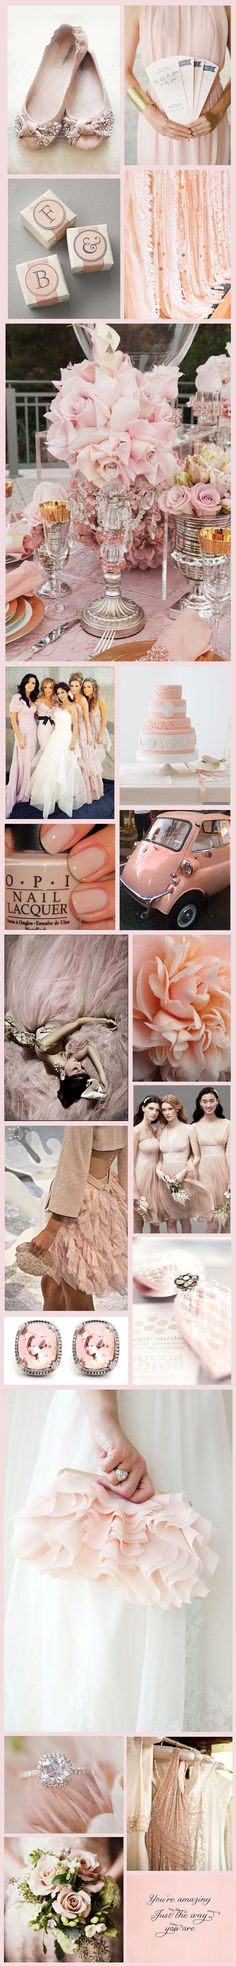 Blush Inspiration Board  Love everything!!  Click www.Signature-Event.com for assistance in creating your event.  Wedding and Event Planner